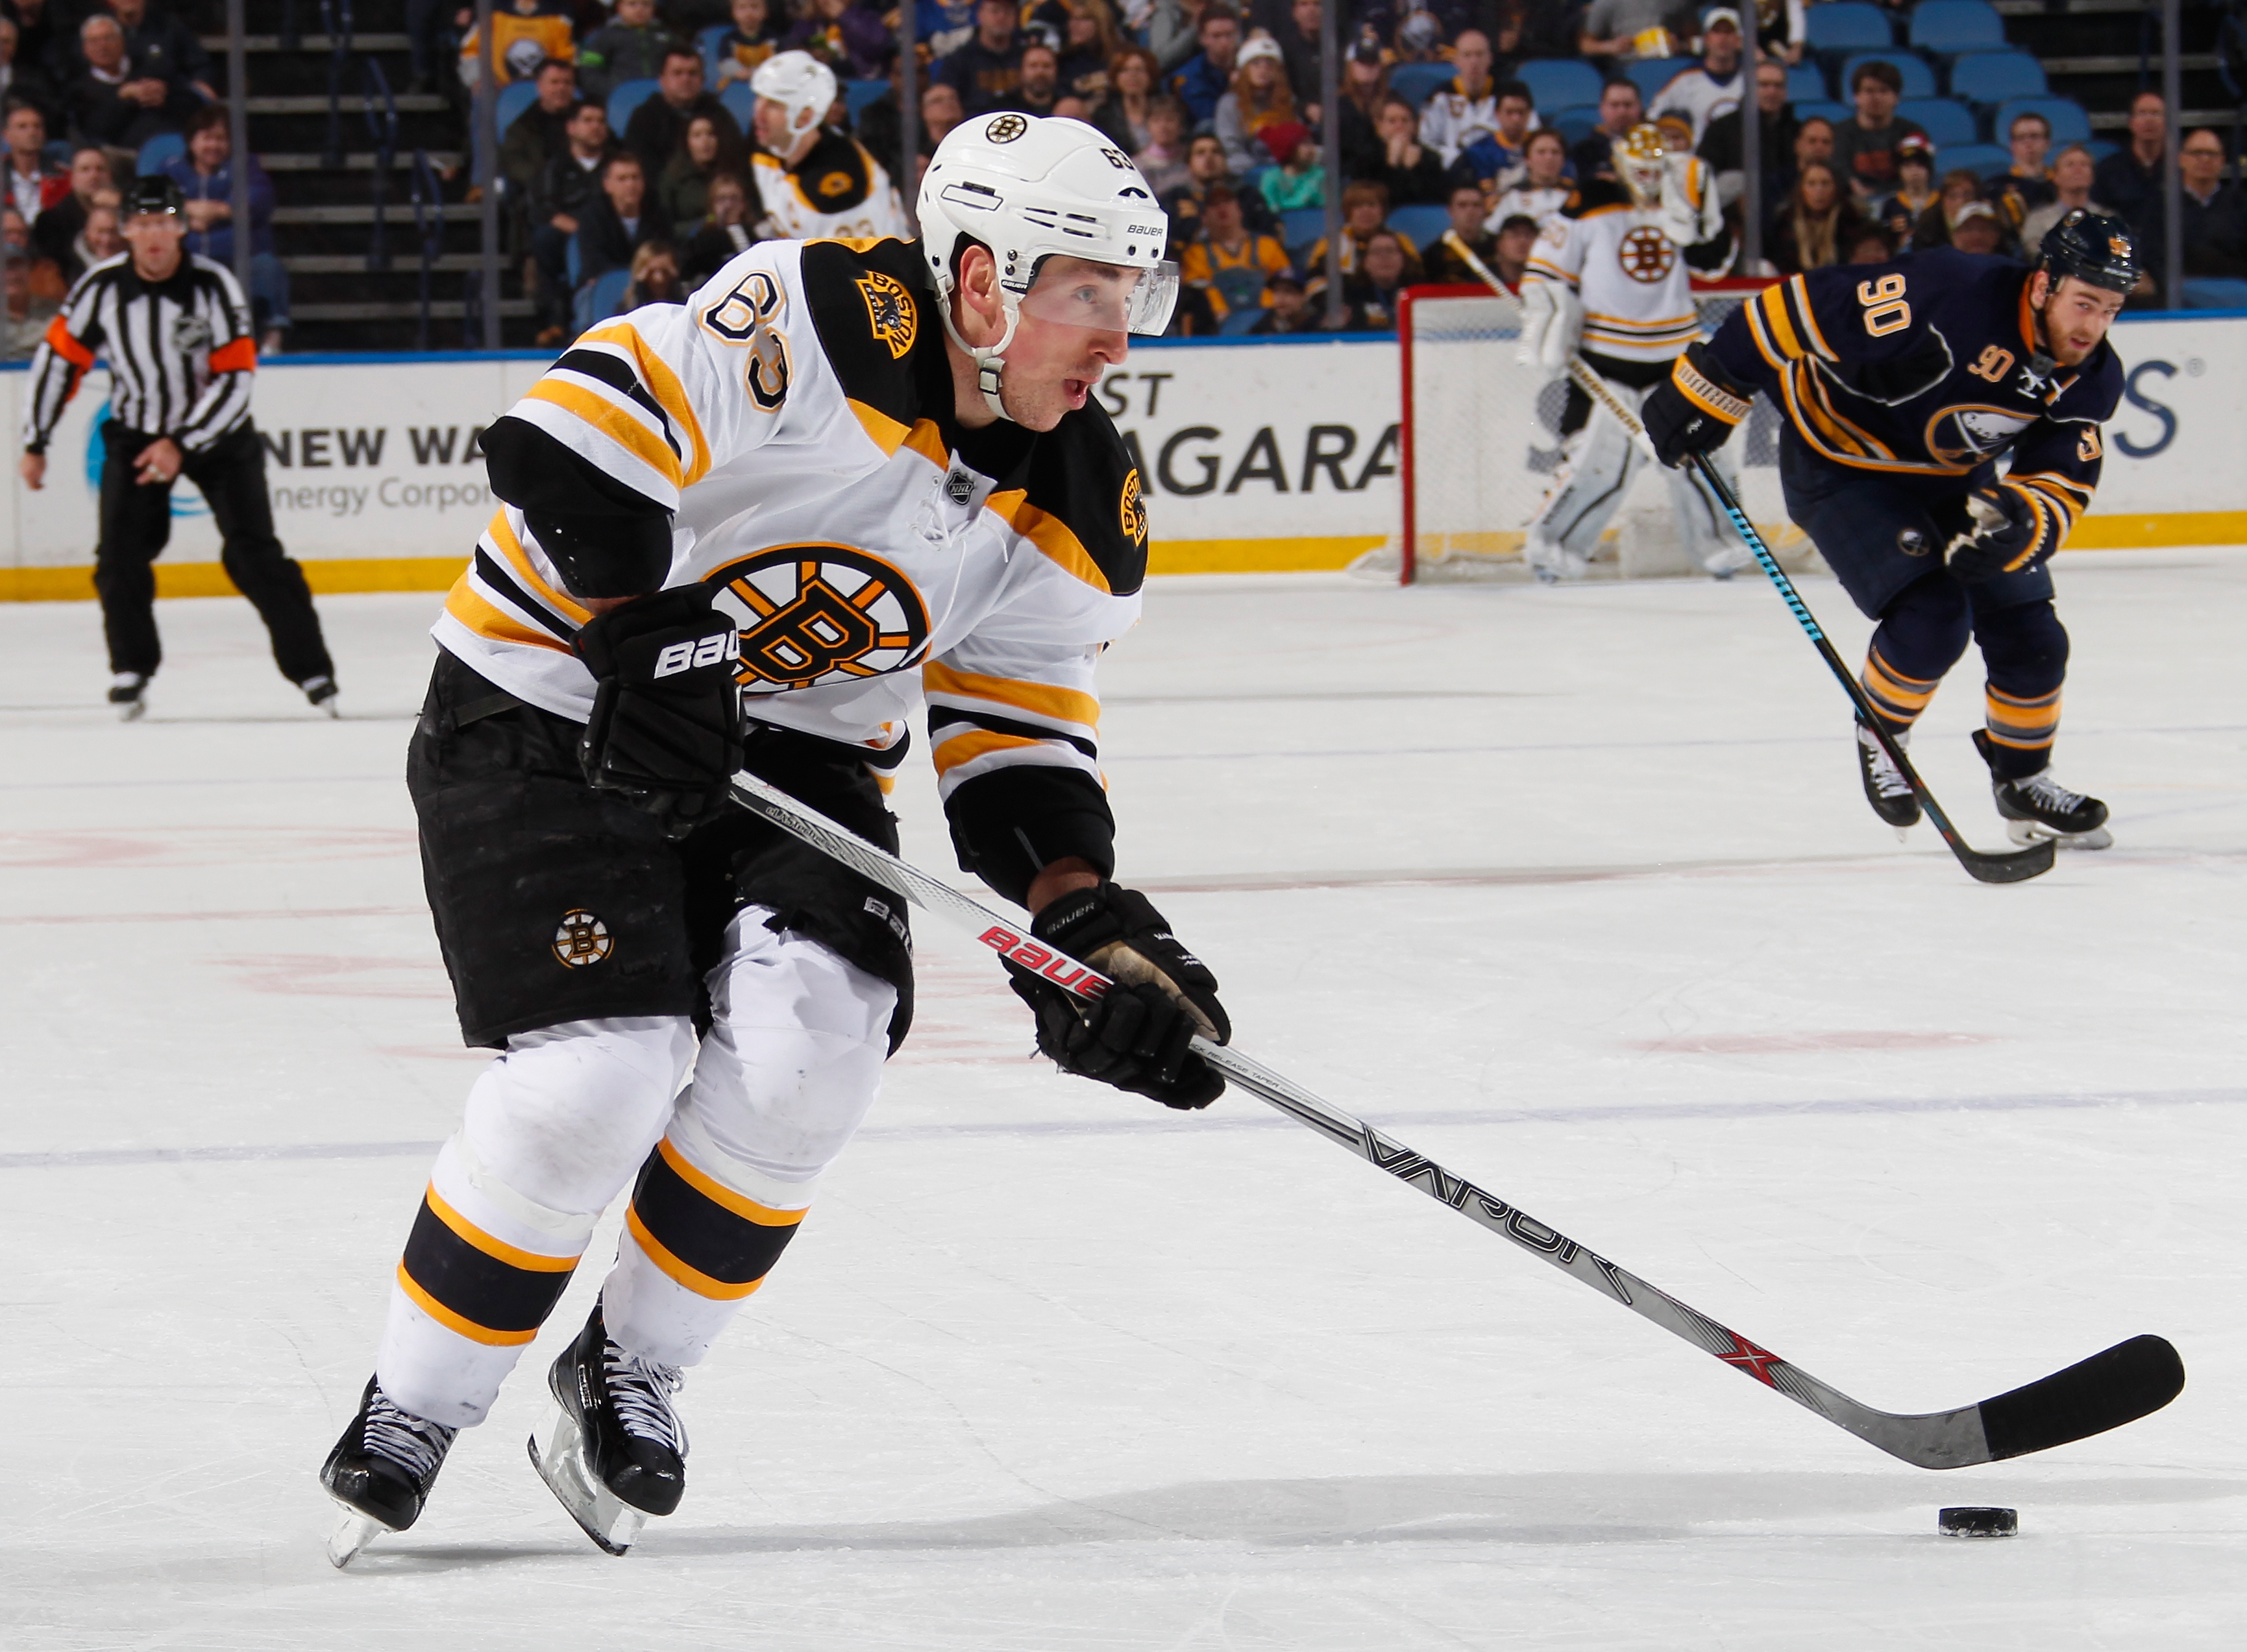 Brad Marchand has tormented the Sabres throughout his career. (Getty Images)